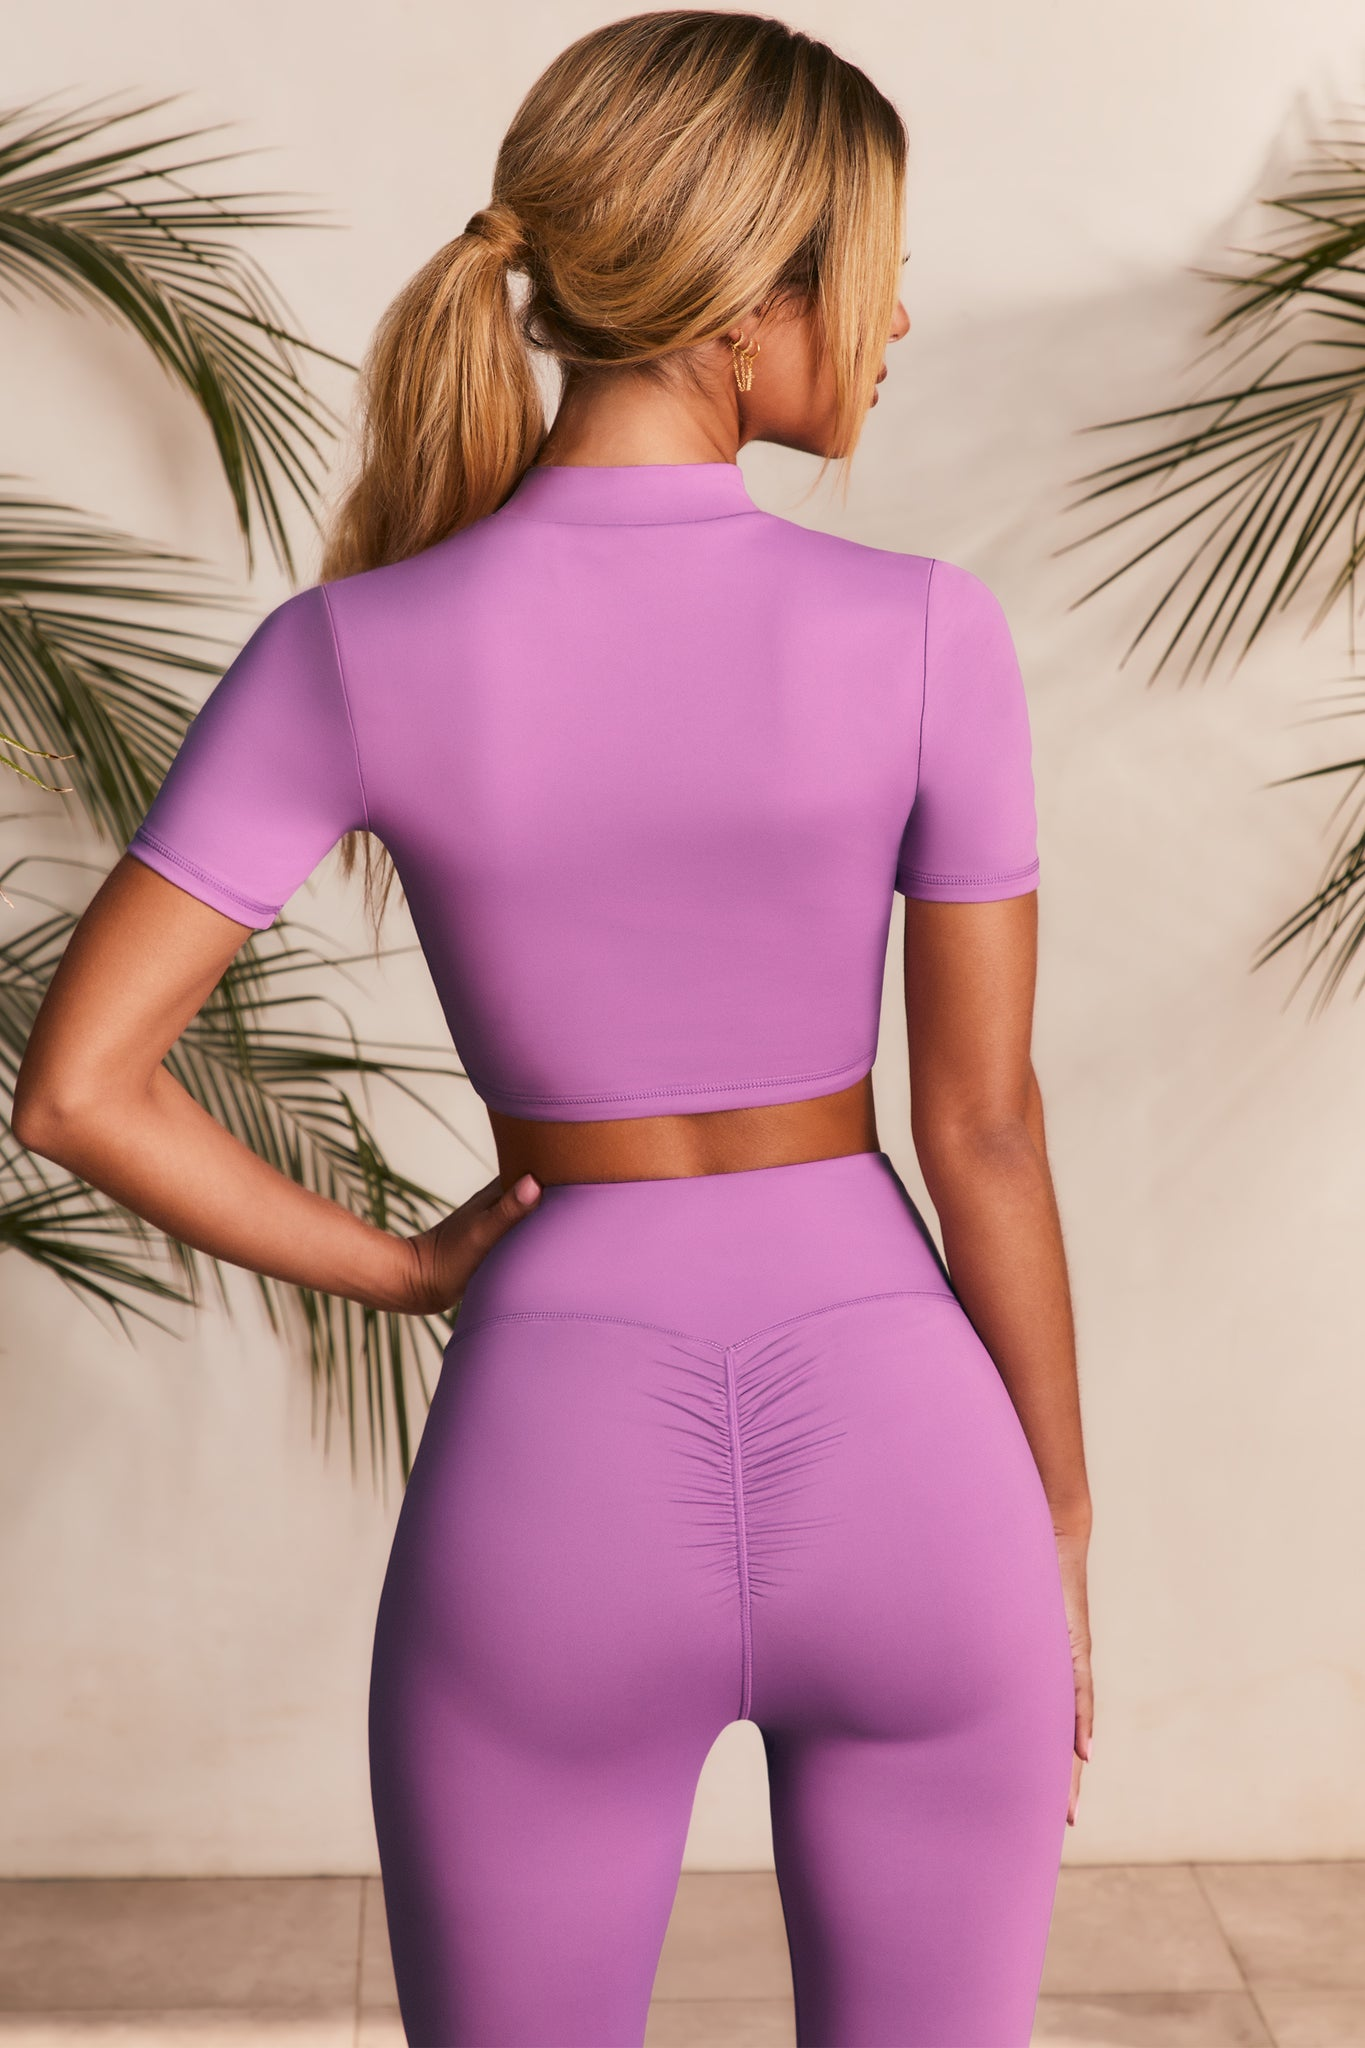 High neck crop top in purple with short sleeves. Image 3 of 6.